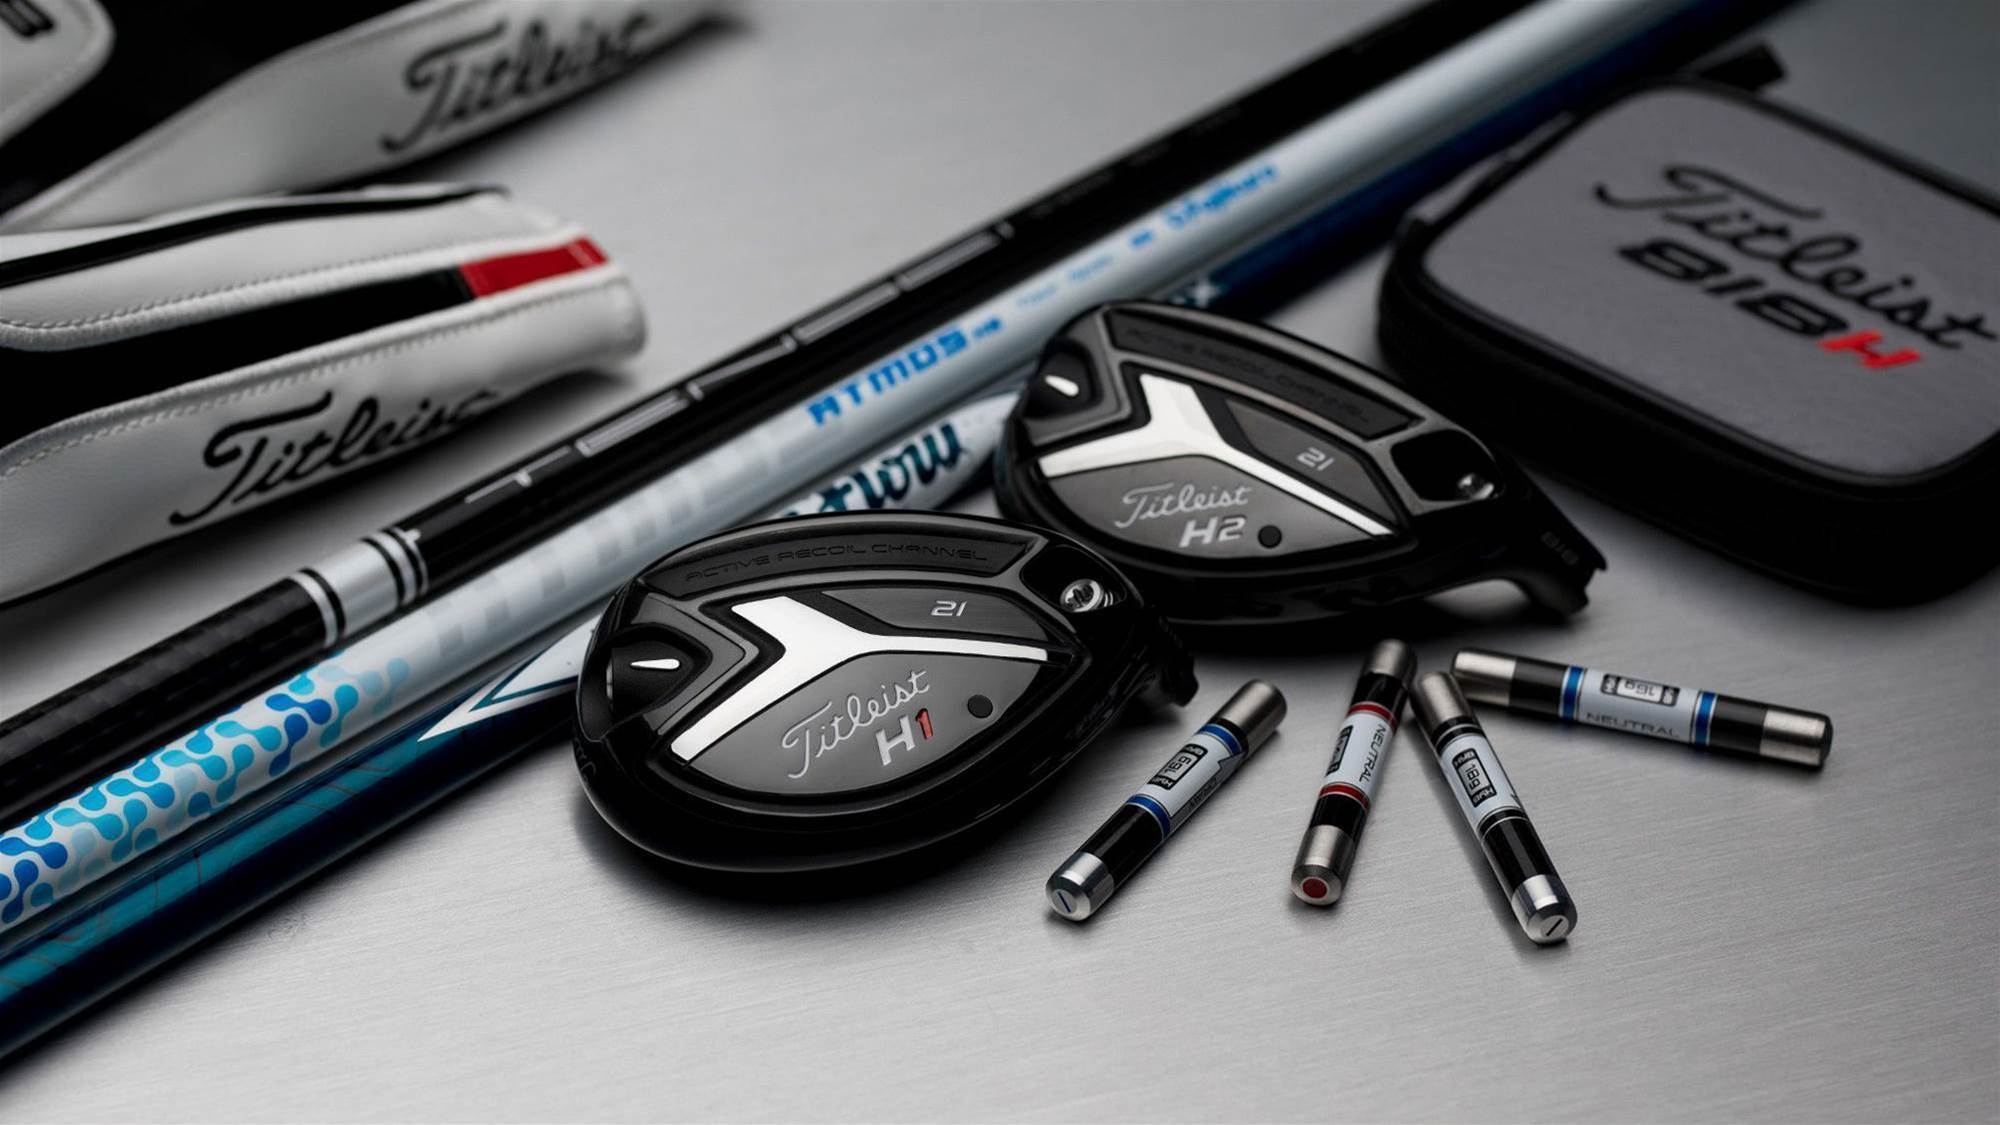 Titleist's new player specific hybrids